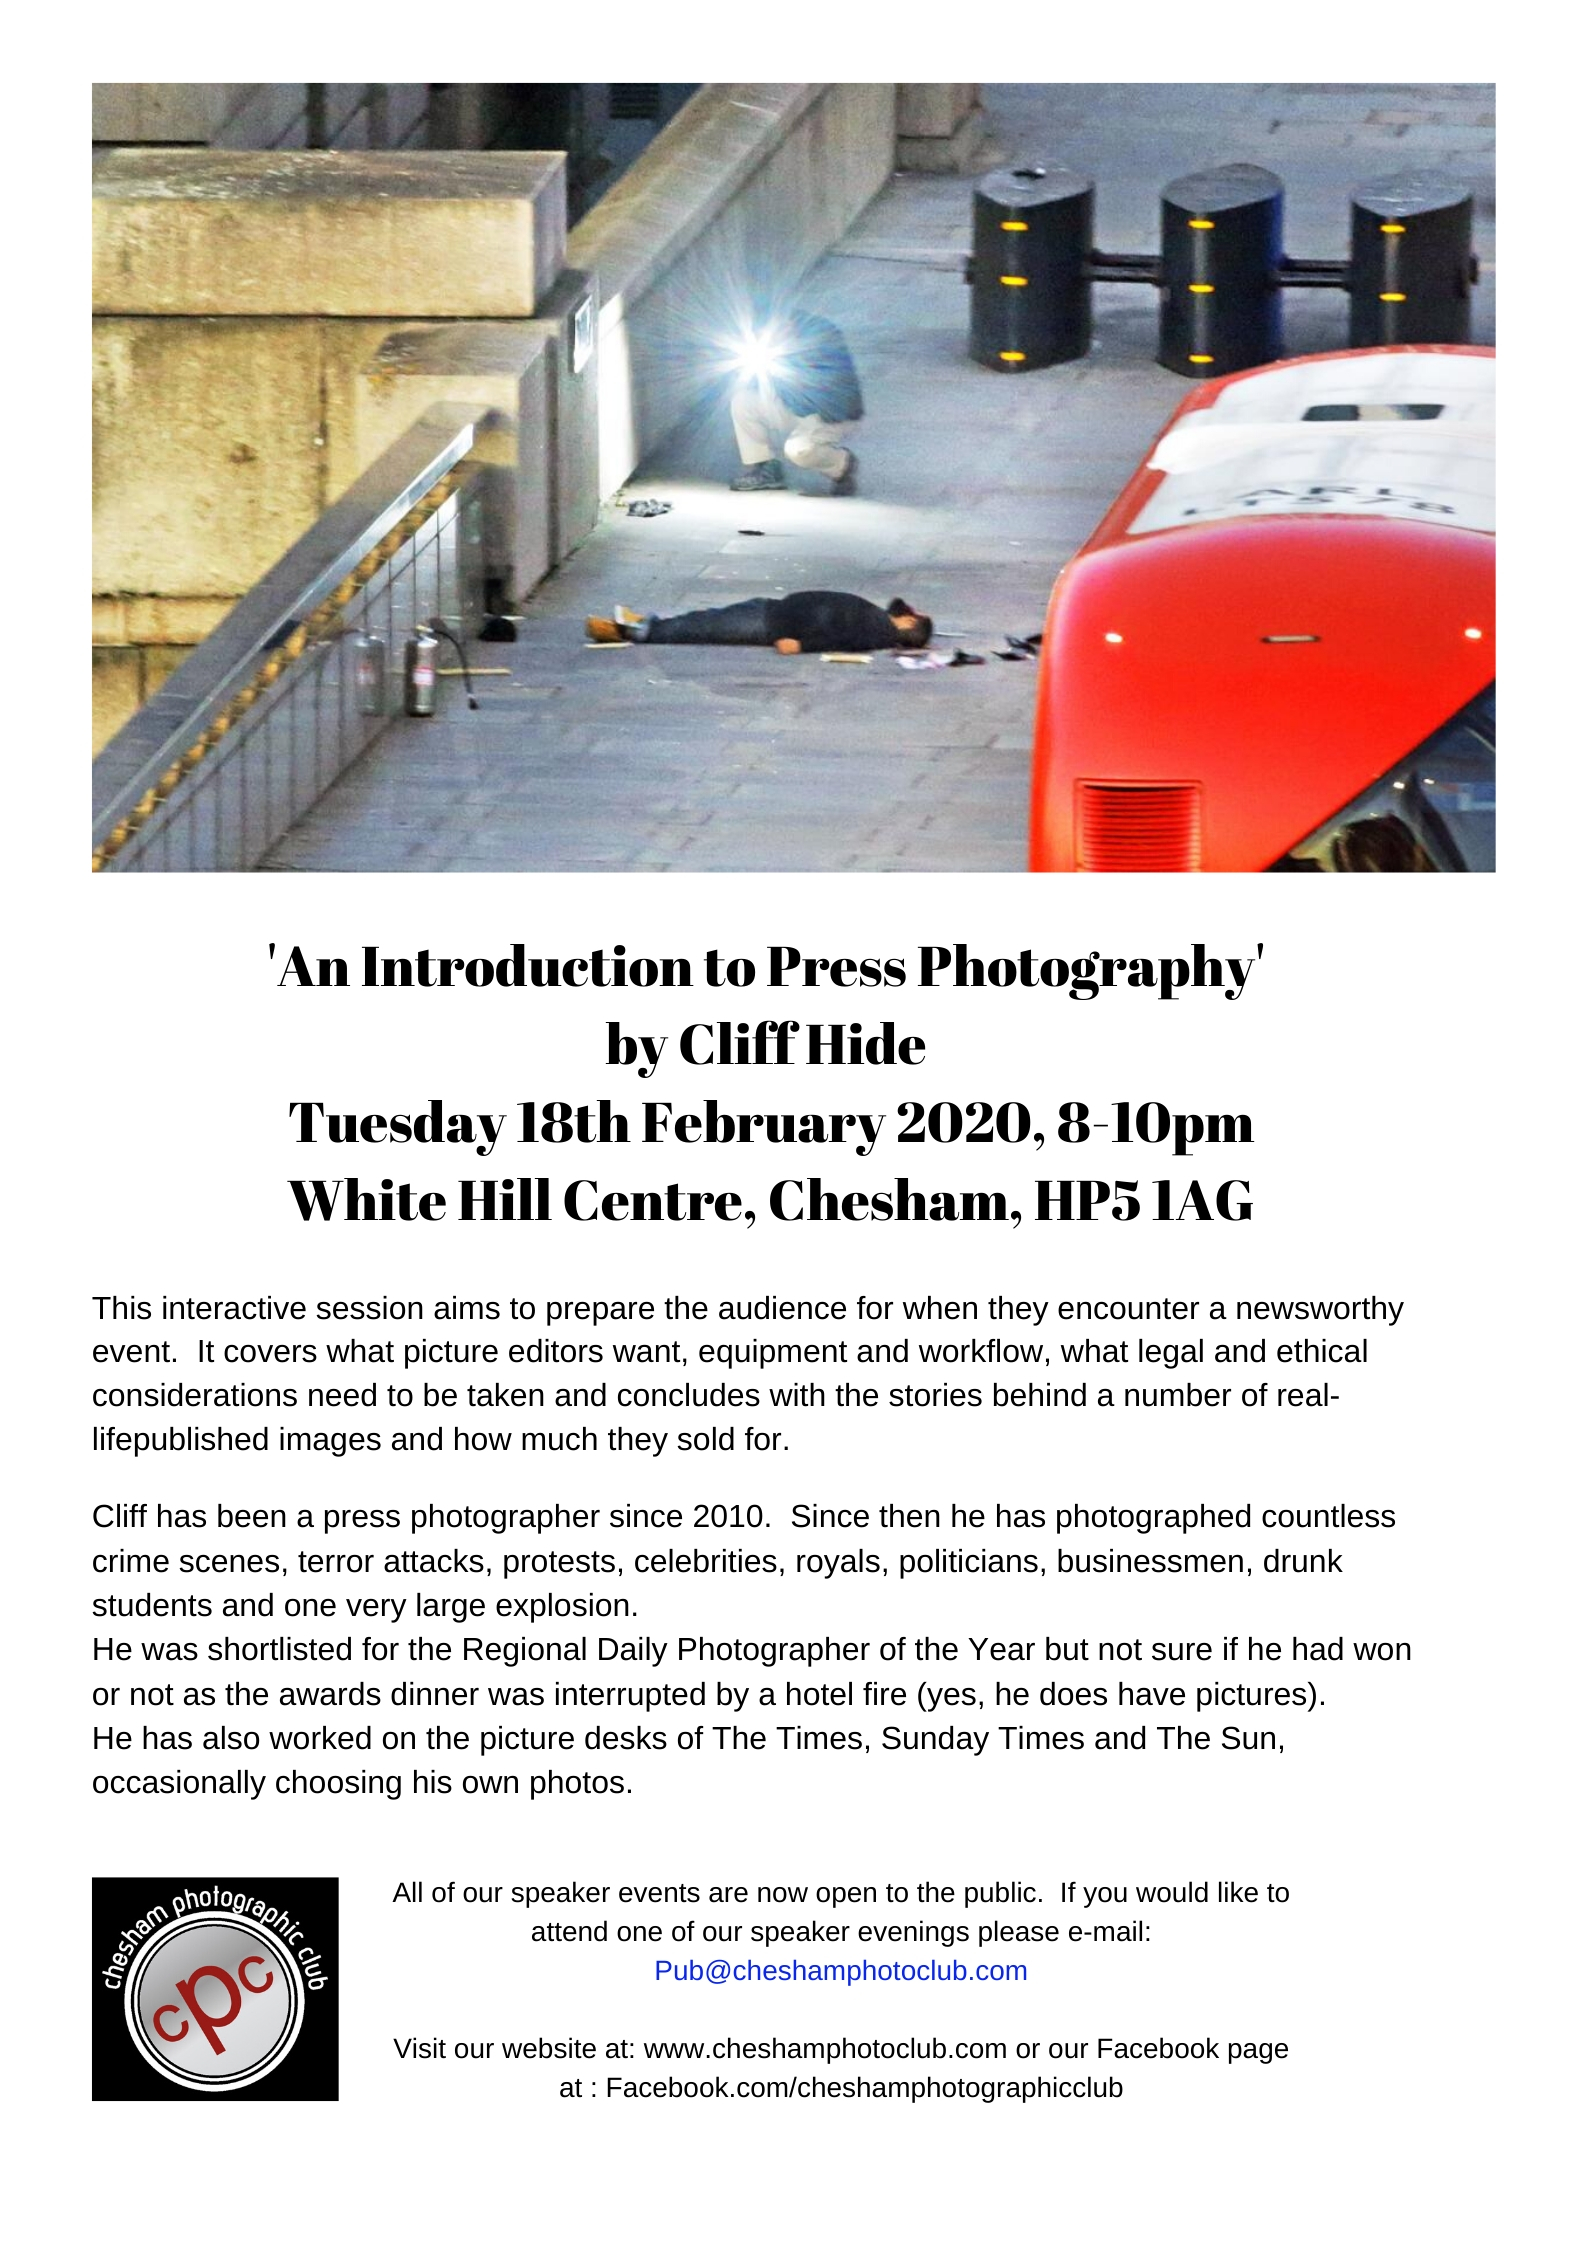 An Introduction to Press Photography by Cliff Hide